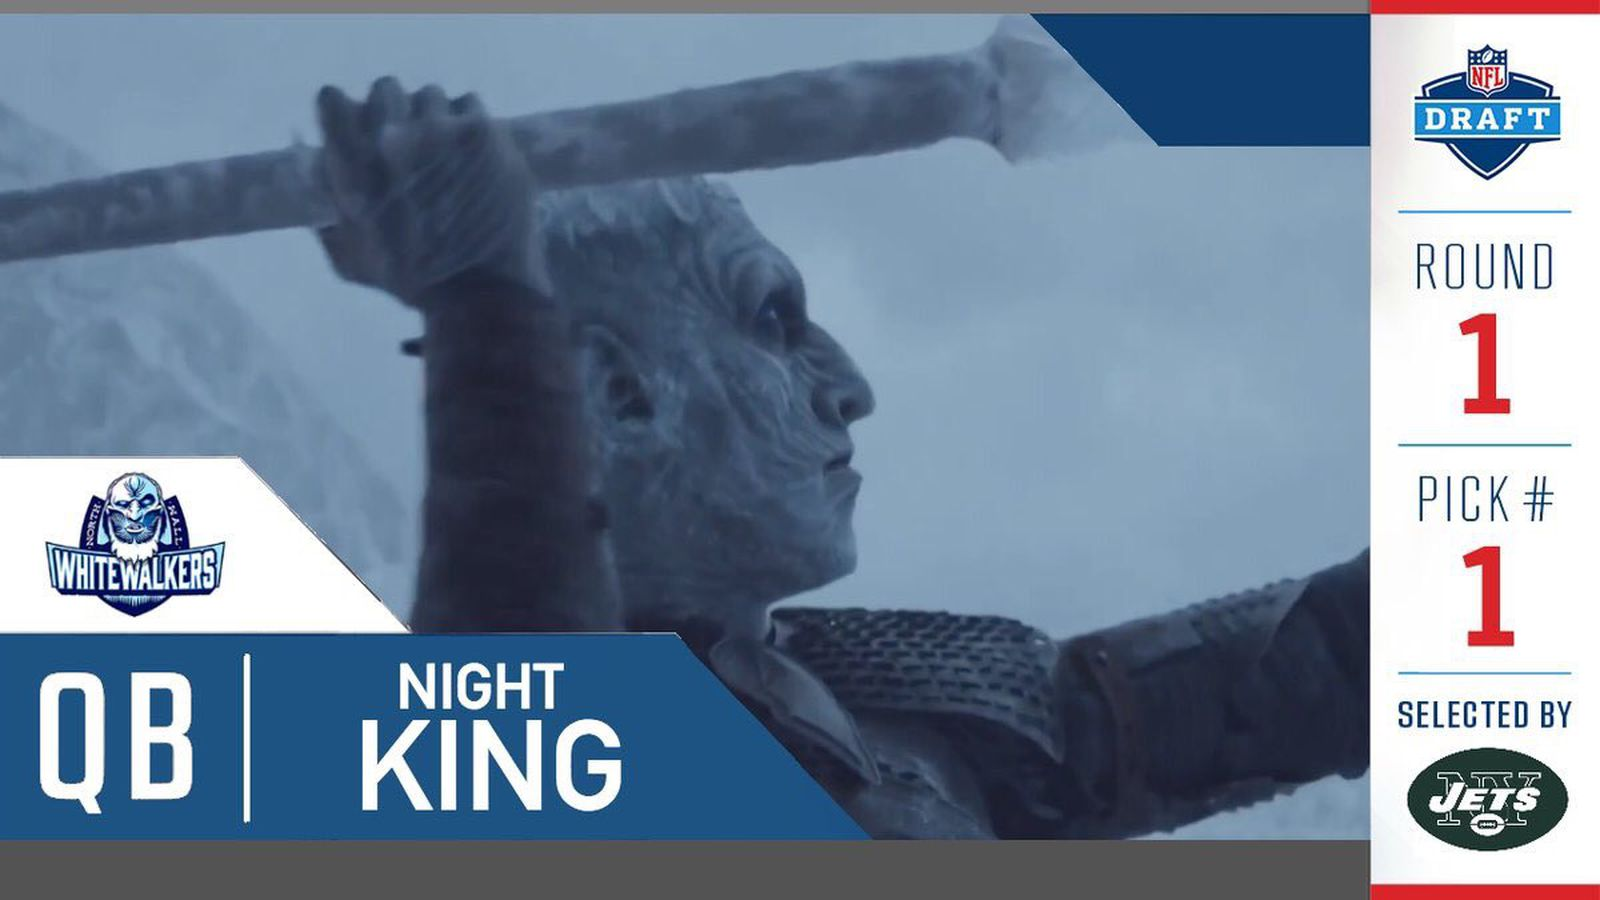 Game Of Thrones Night King Threw A Javelin And Became A